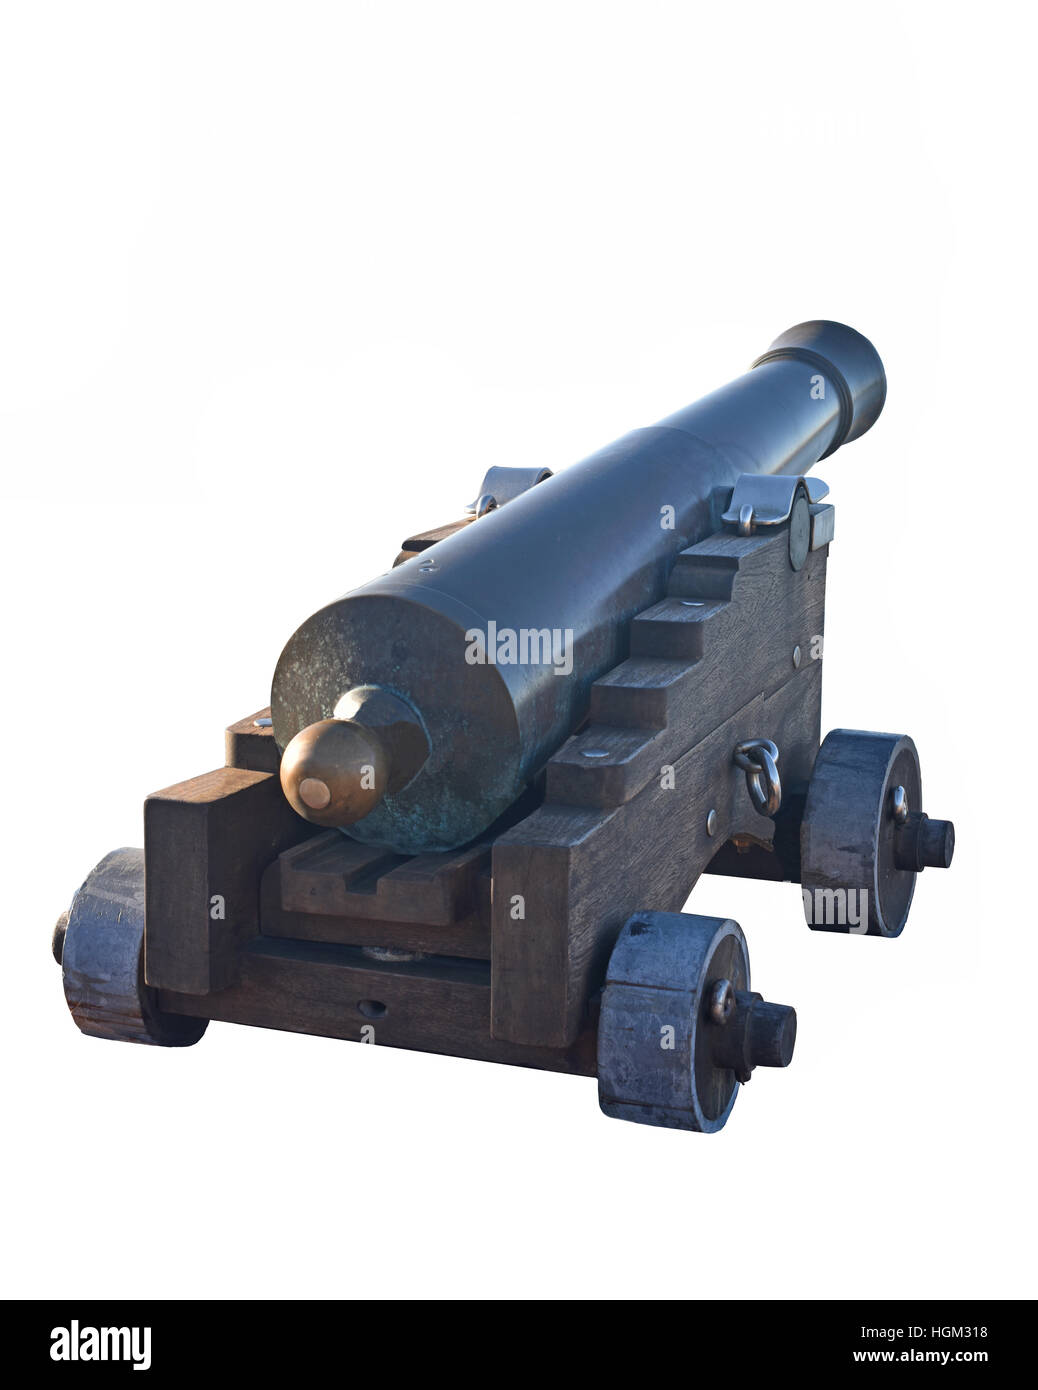 Old naval cannon isolated on white background. - Stock Image